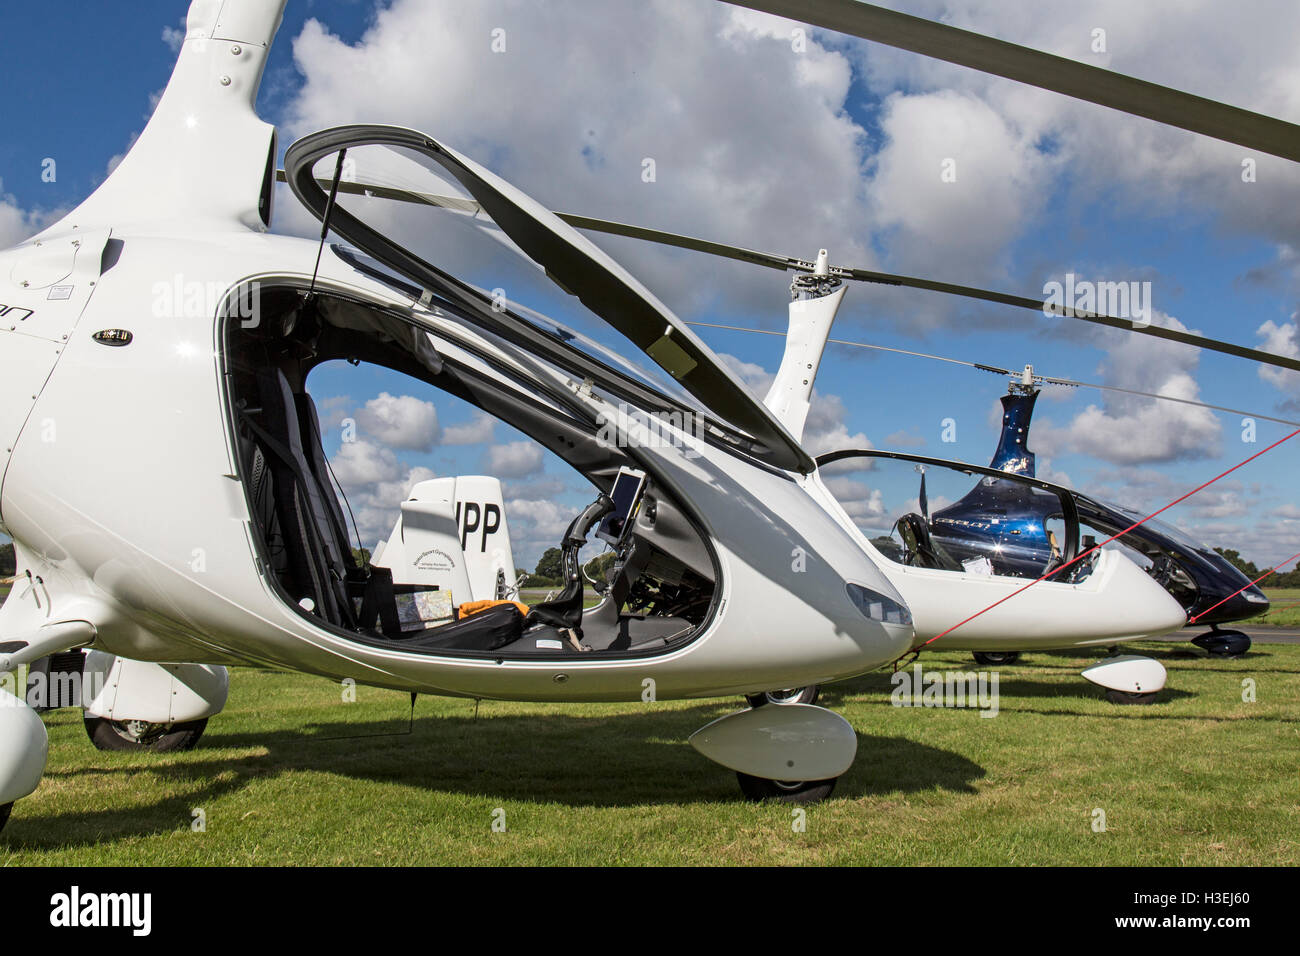 Rotorsport Cavalon Gyrocopter with two other gyrocopters